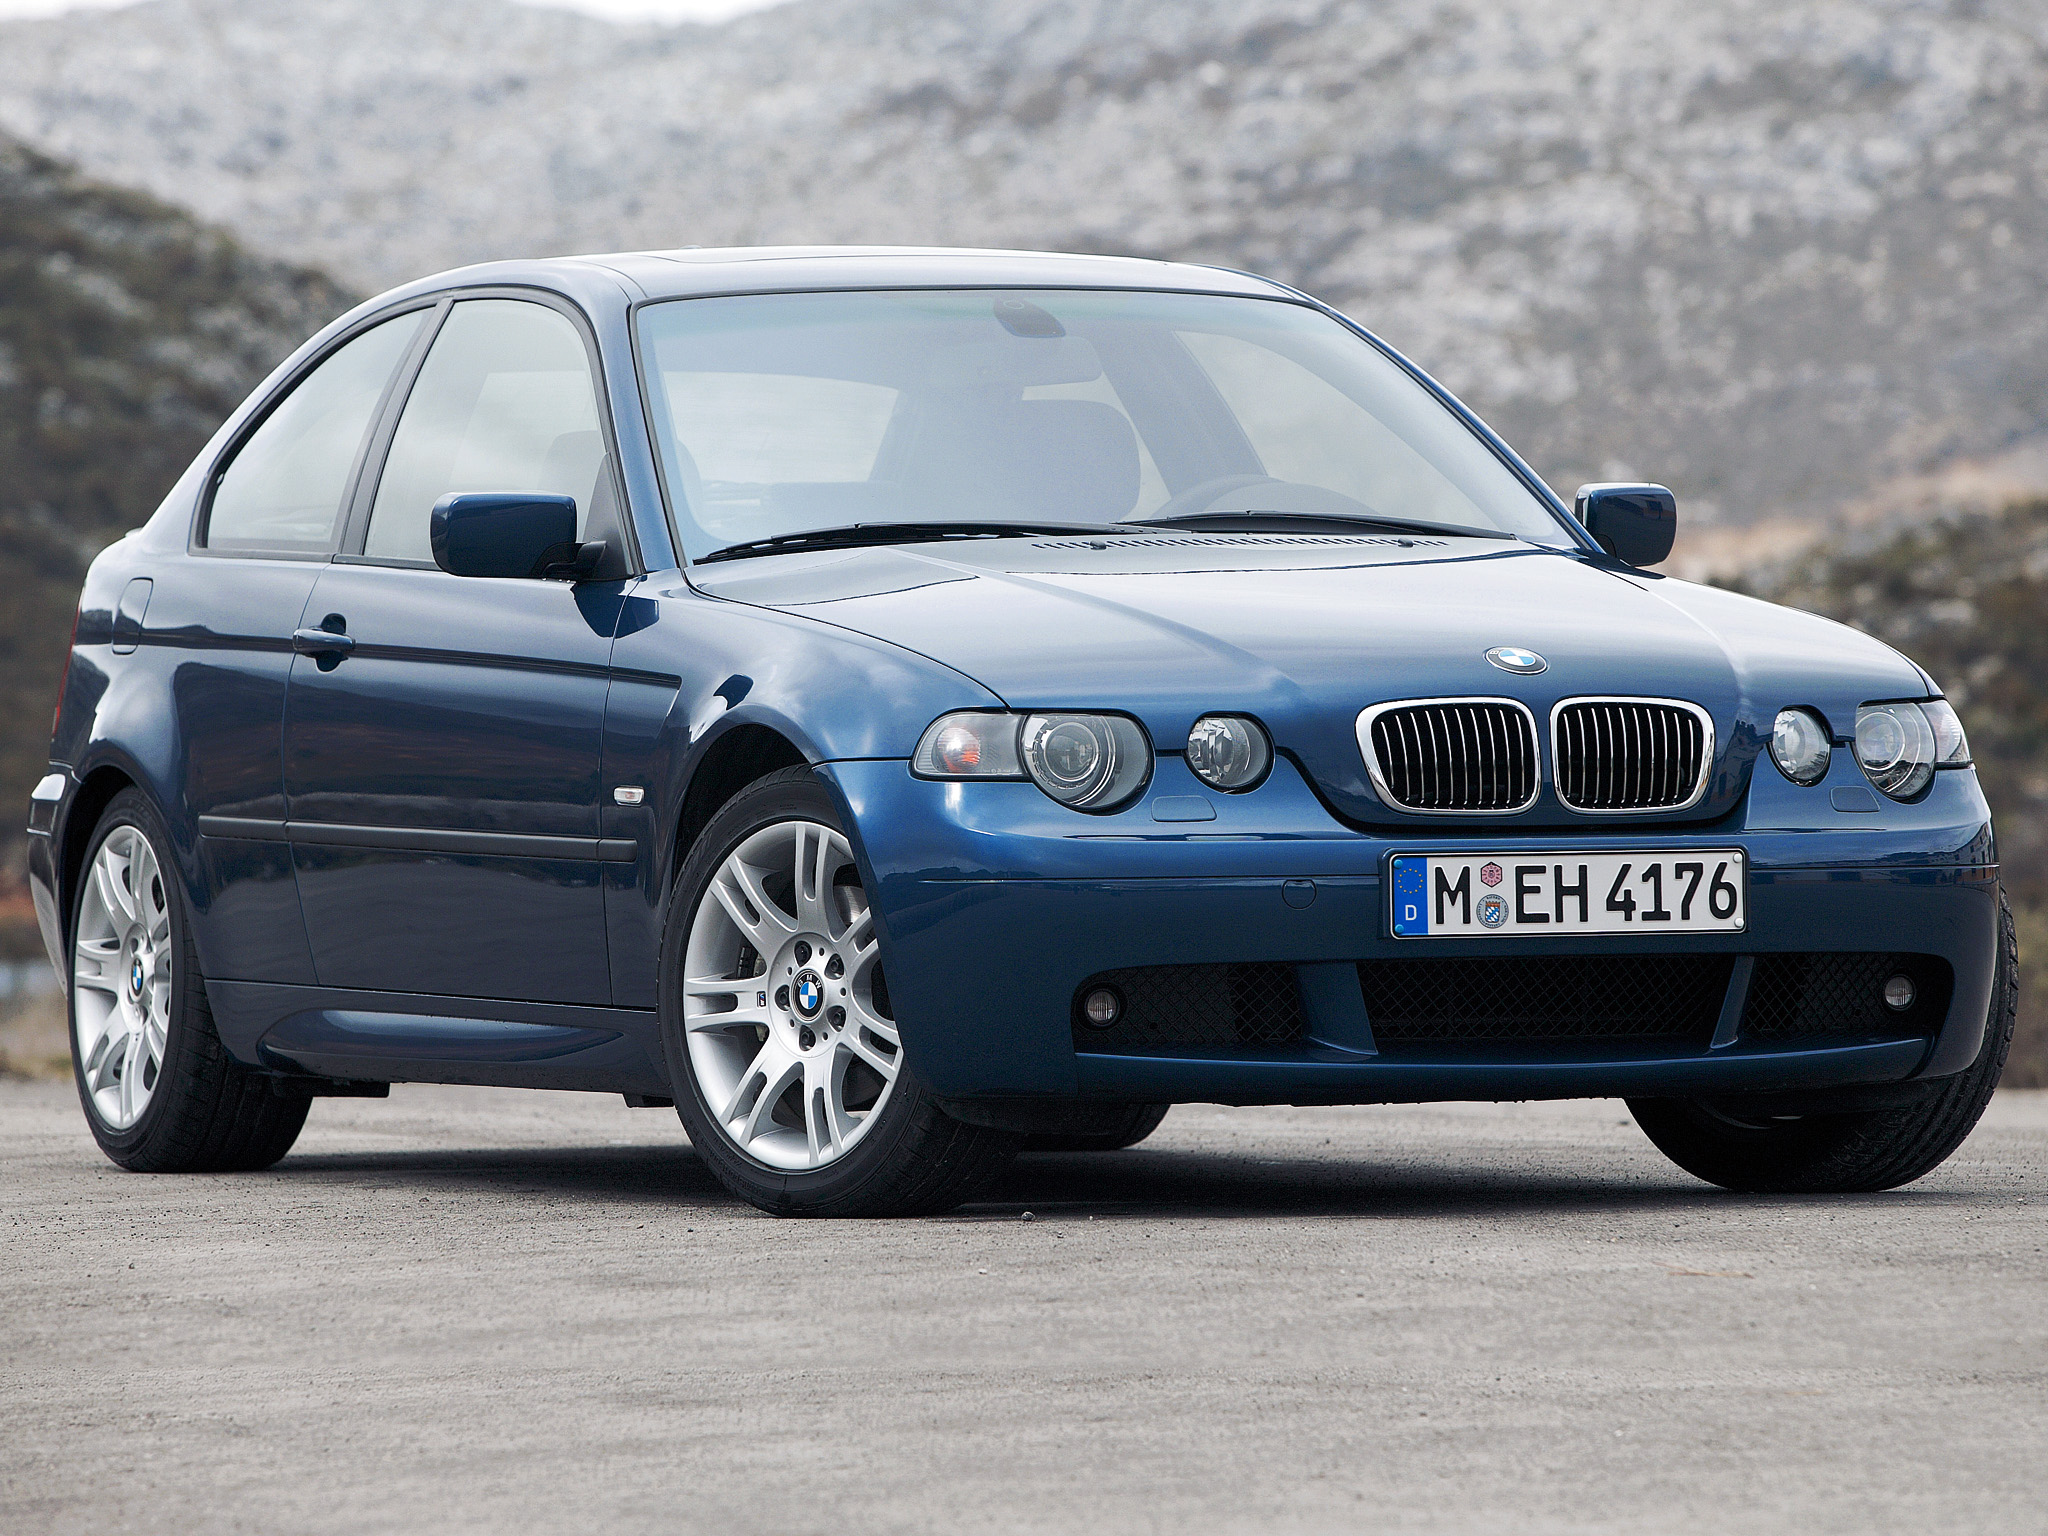 BMW 3 series 325ti 2001 photo - 9